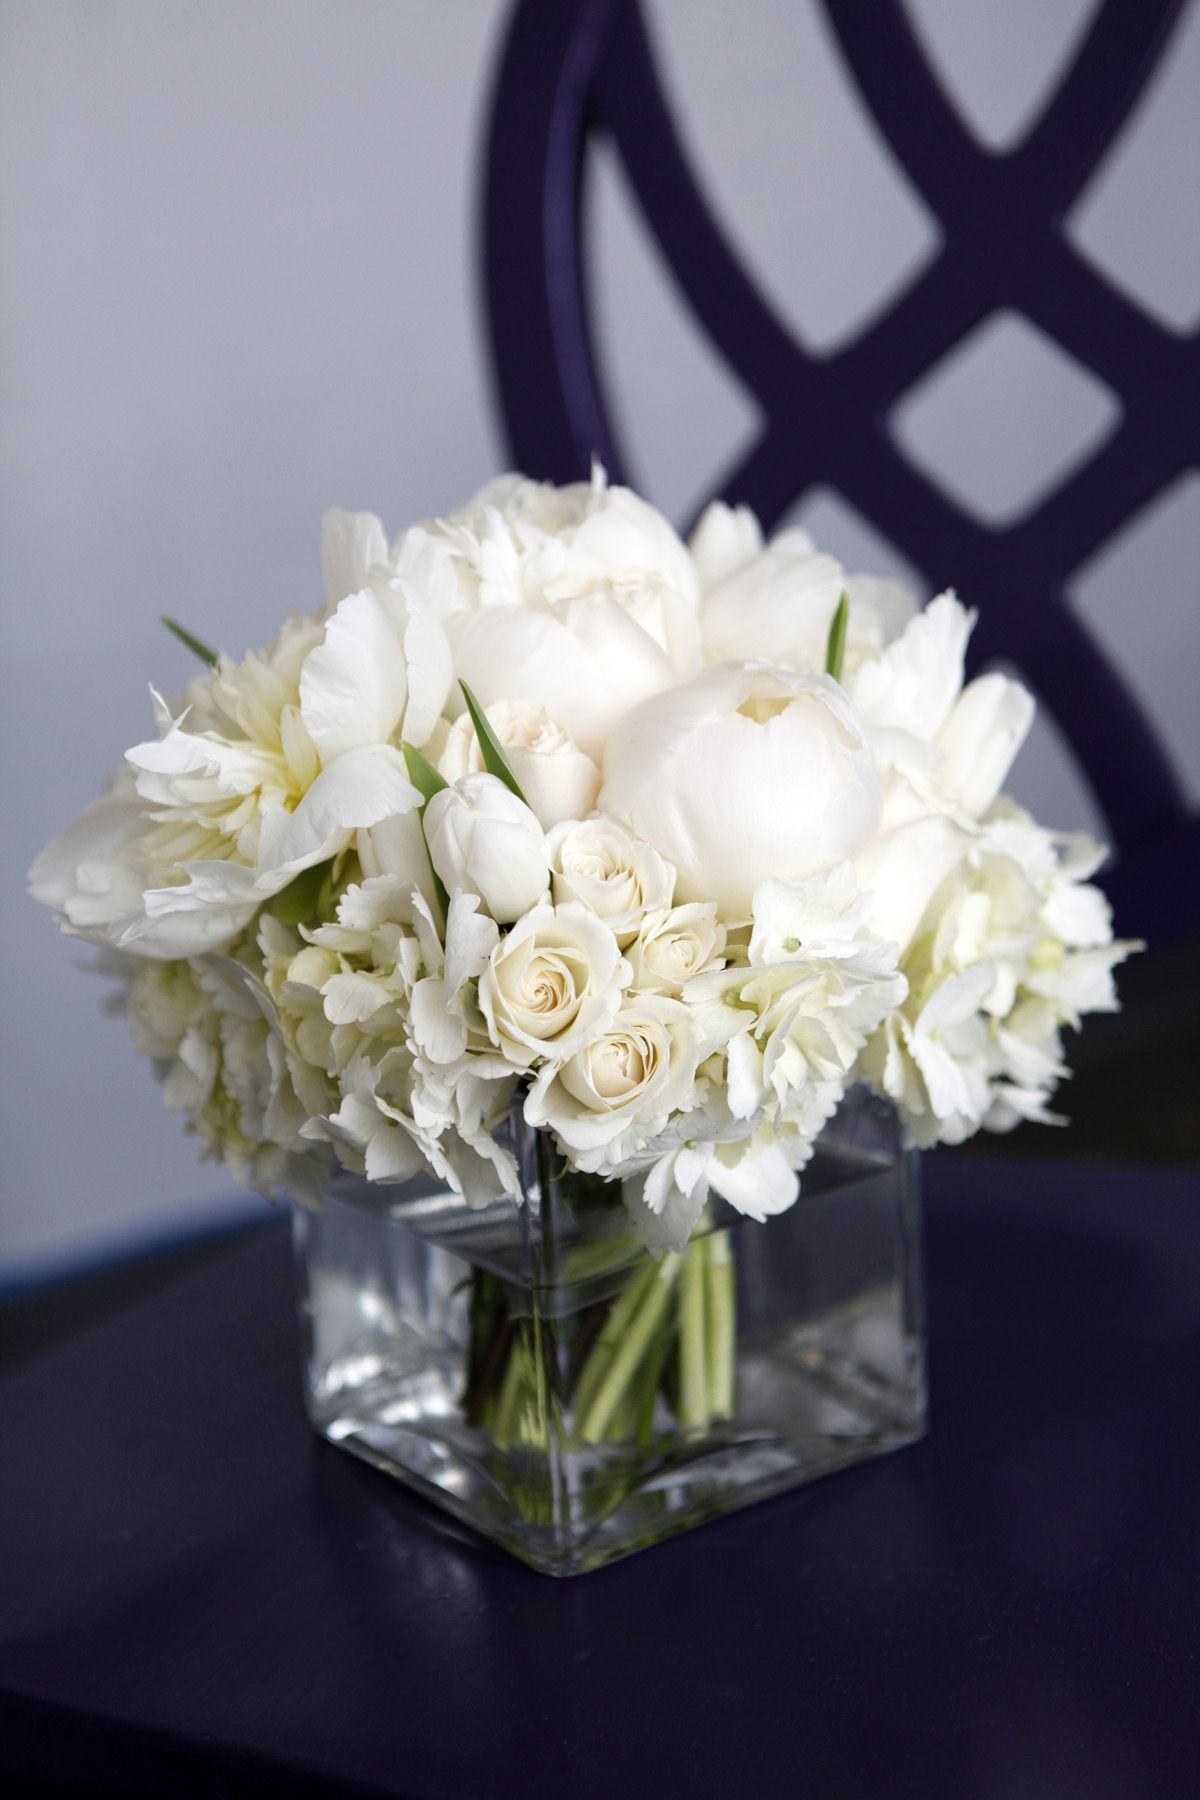 Wedding bouquets not flowers  centerpiece or bouquet  not sure what flowers are in it but I do